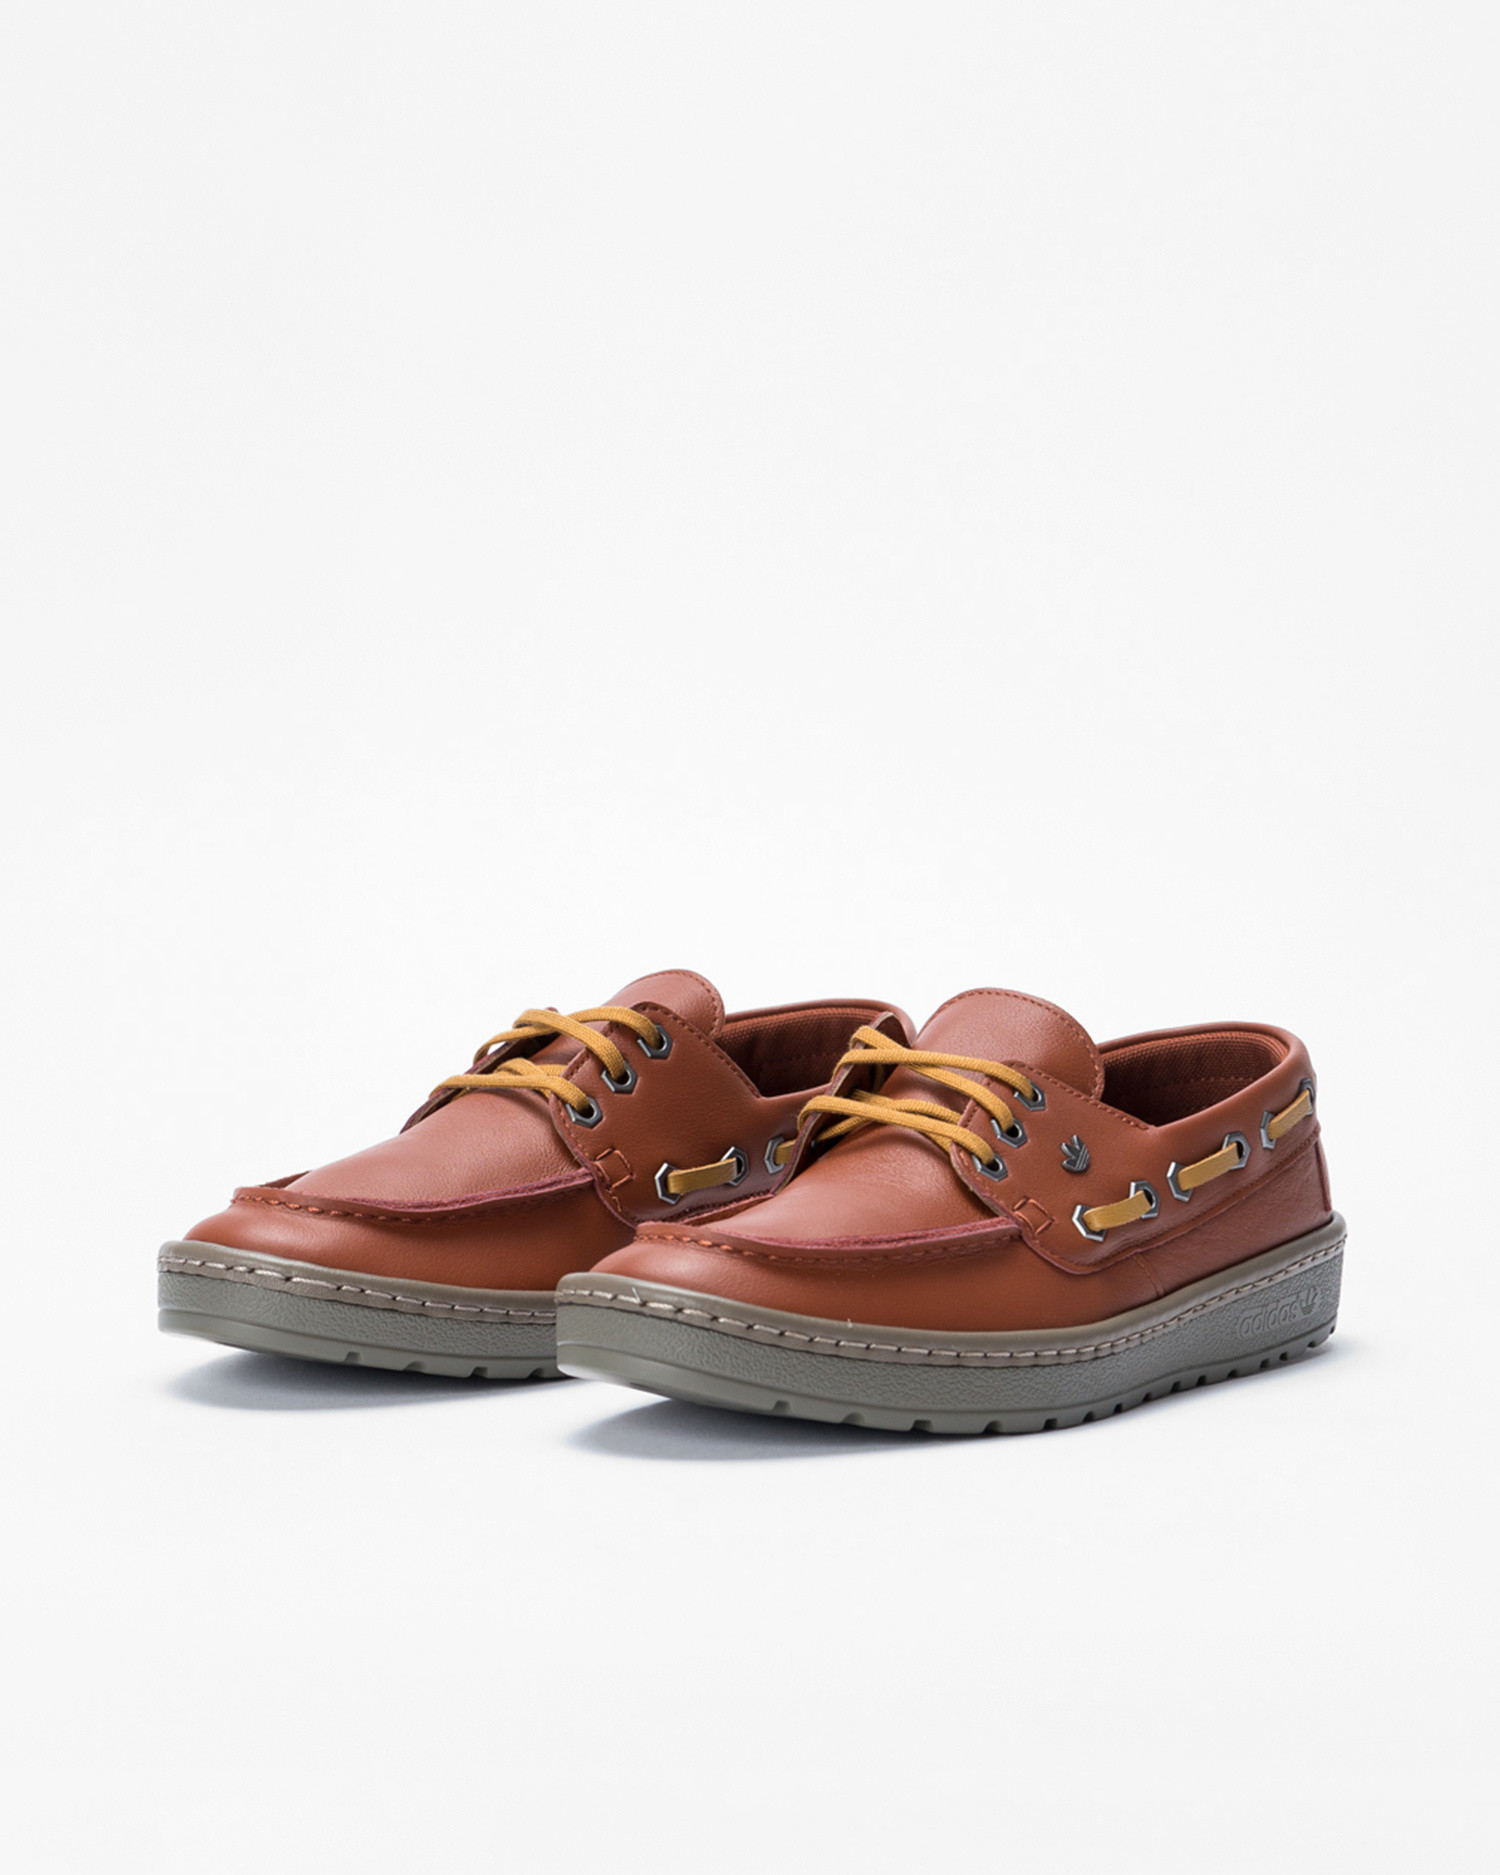 Adidas Saint Florent Redwood/Mesa/Simple Brown